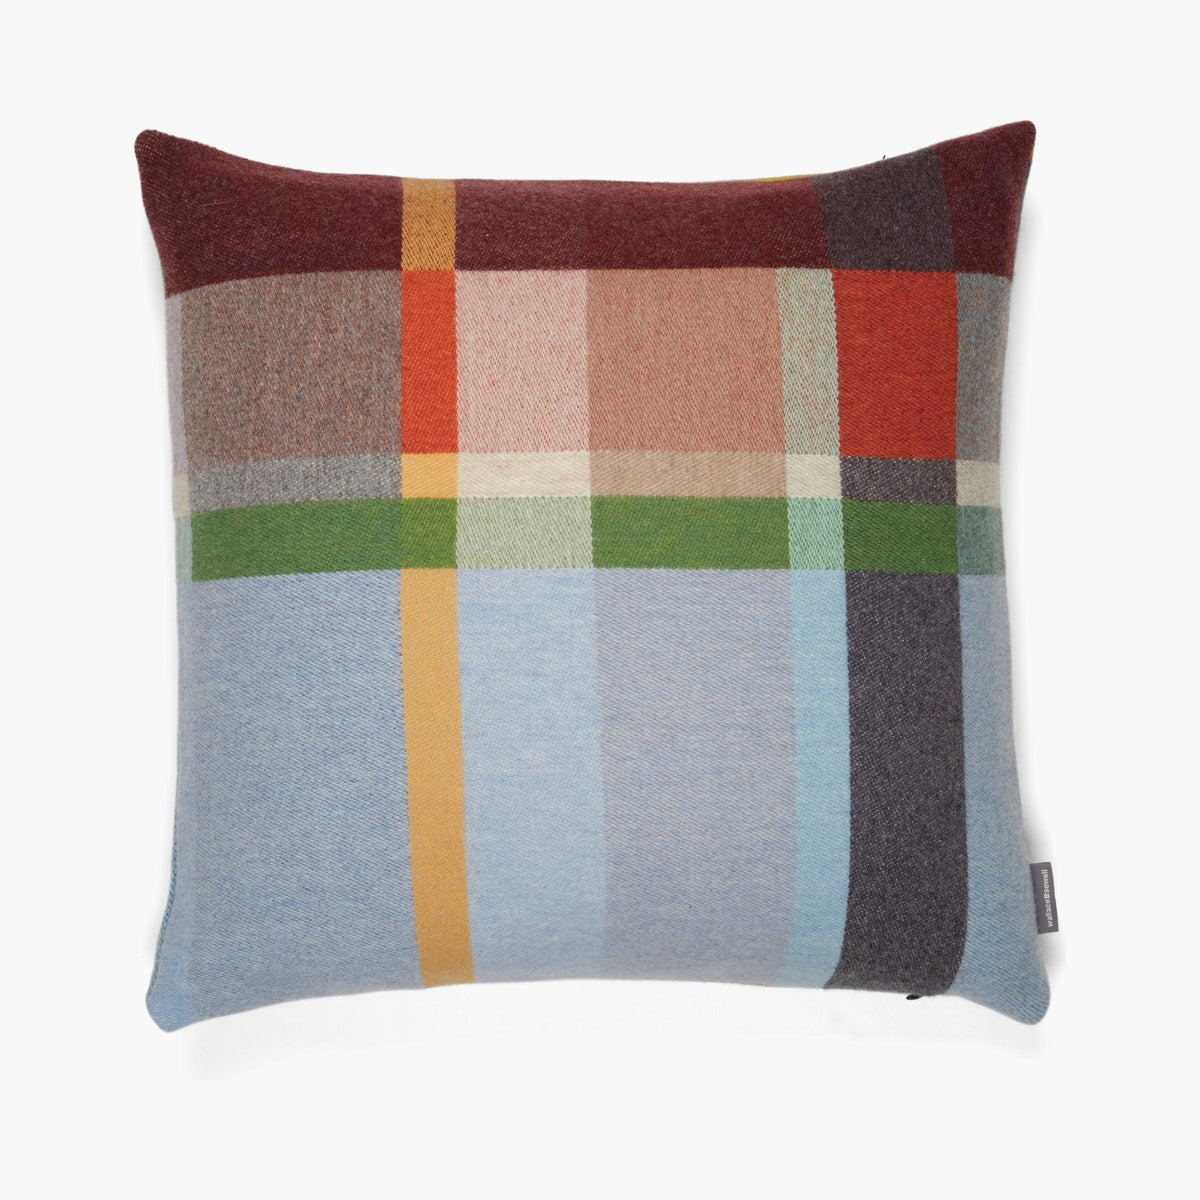 Feilden Lambswool Block Pillow